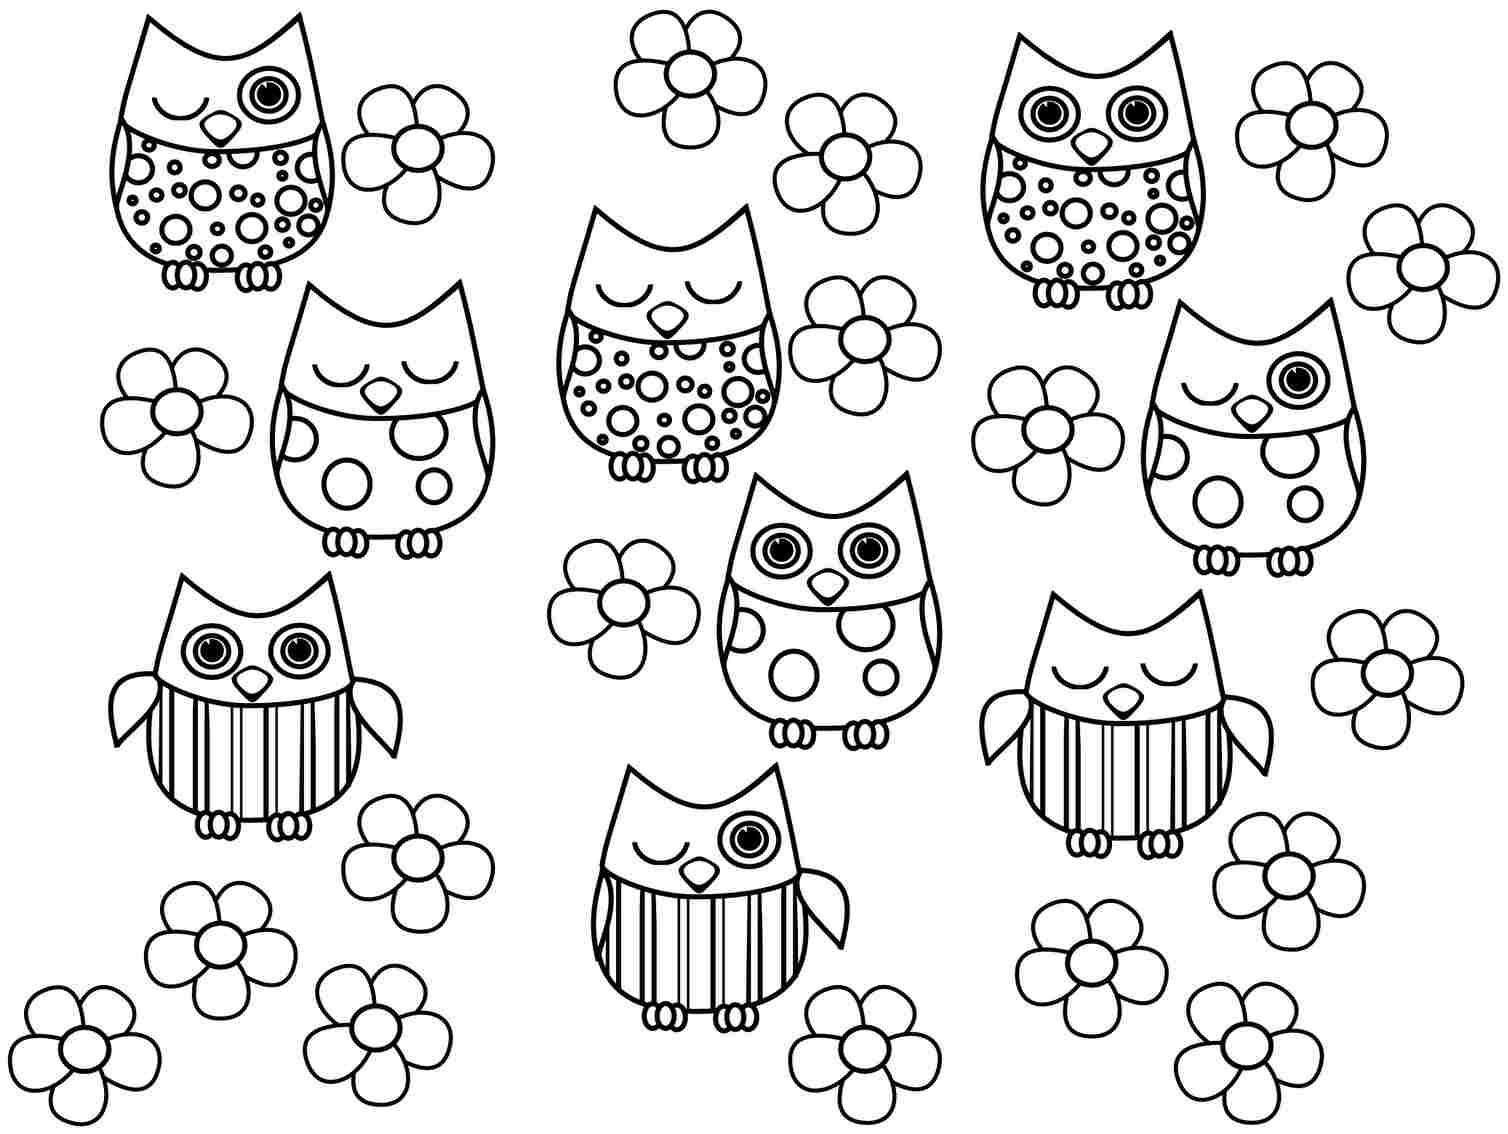 Print Full Size Image Free Colouring Sheets Animal Owl